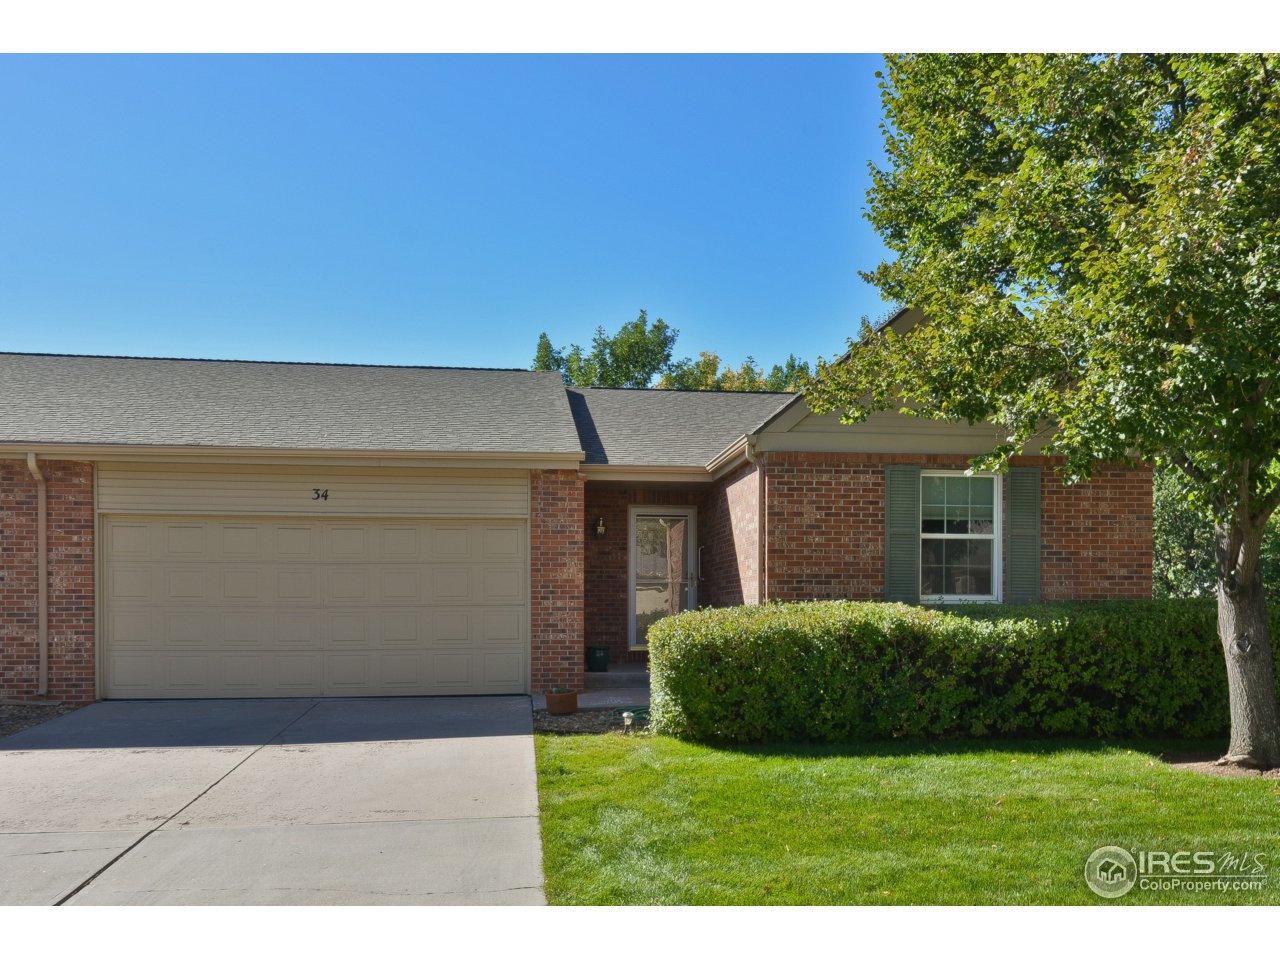 720 Arbor Ave 34, Fort Collins CO 80526